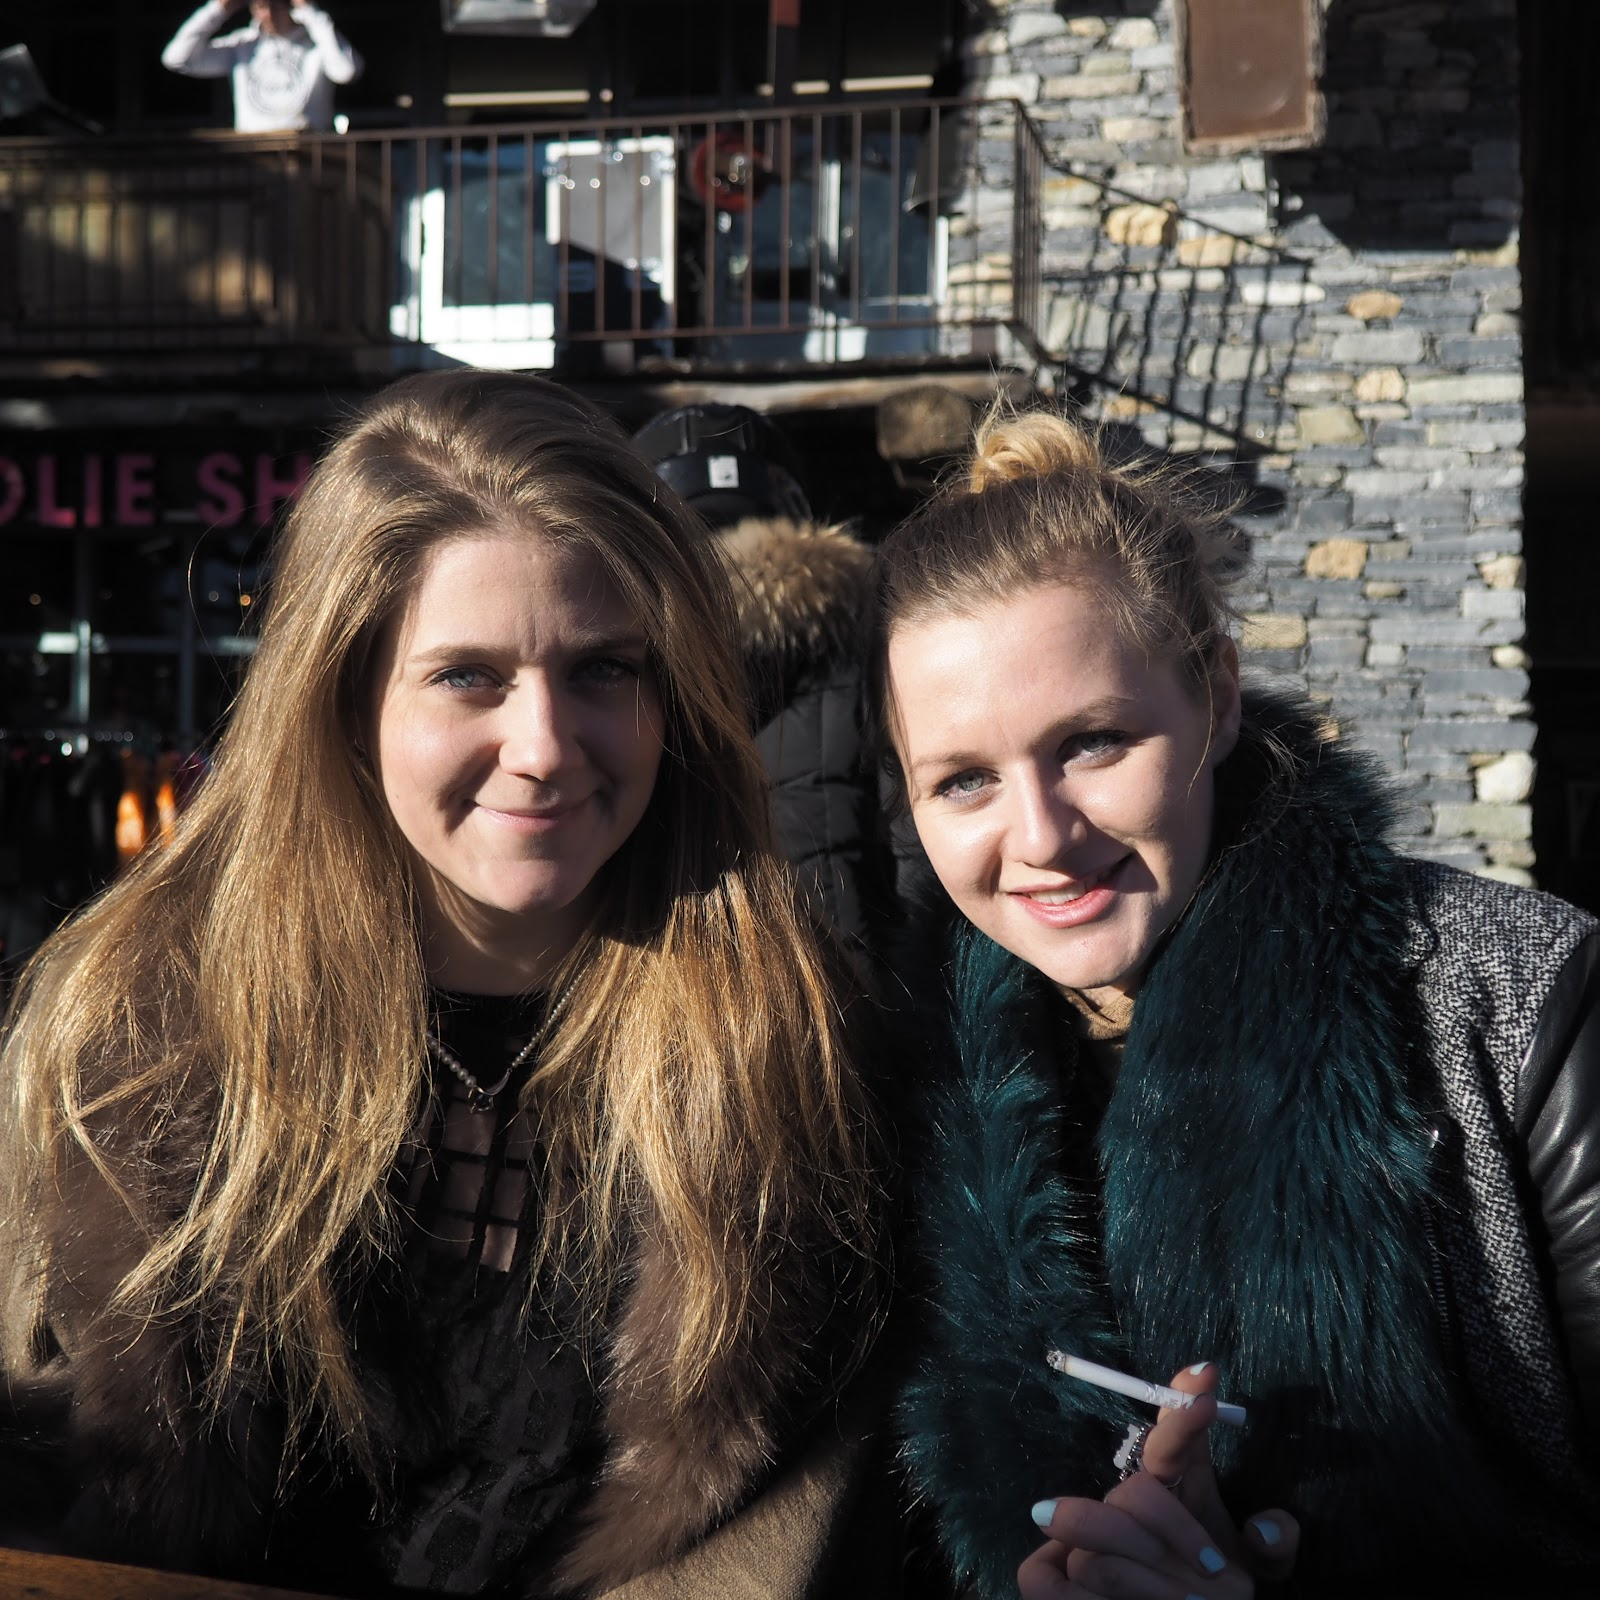 Blonde girls at La Folie Douce, Val d'Isere, France